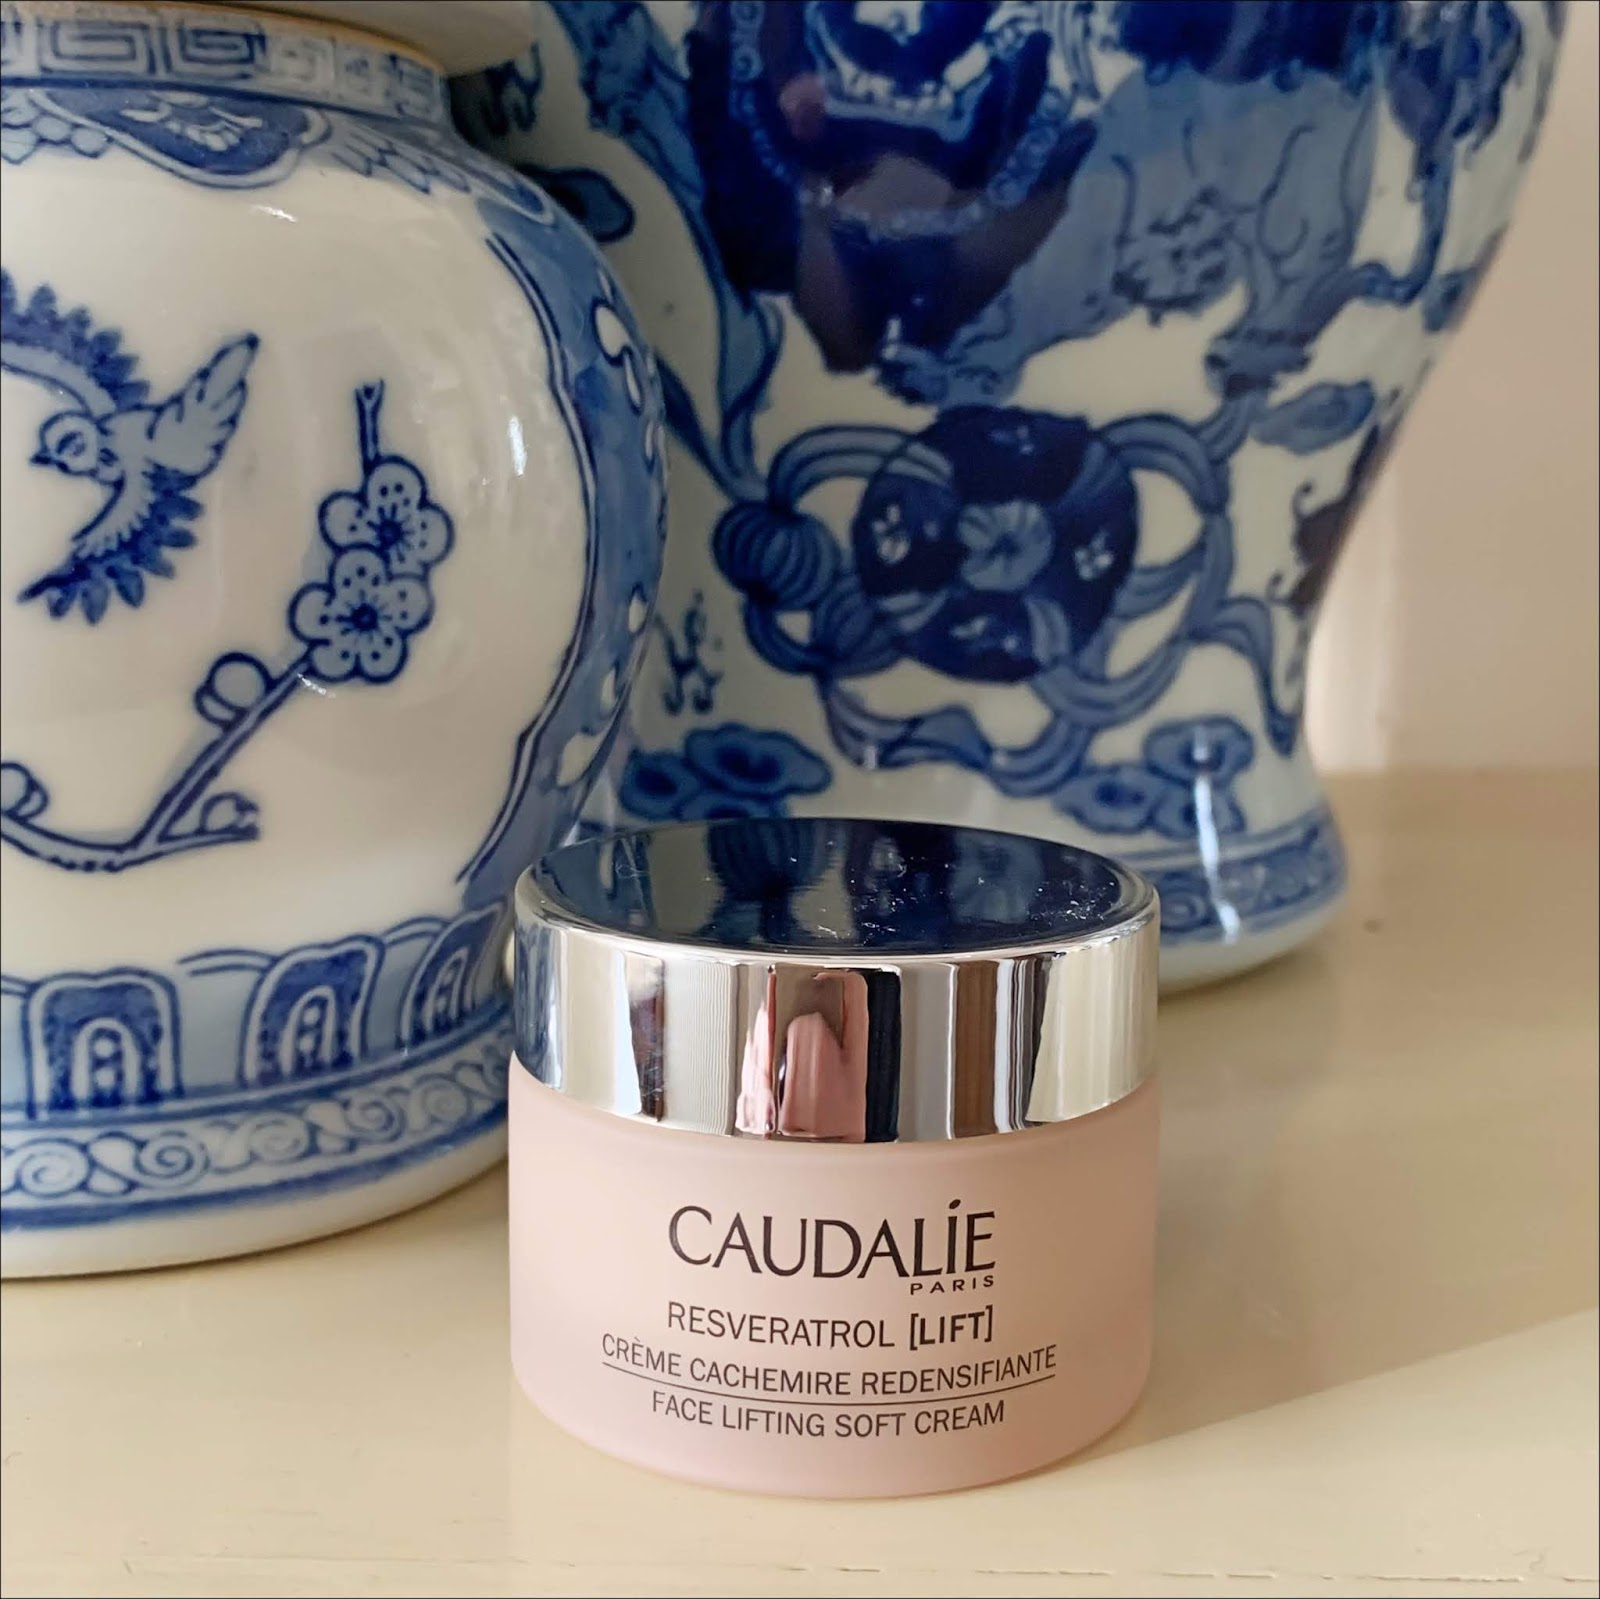 my midlife fashion, claudalie resveratrol lift face lifting soft cream